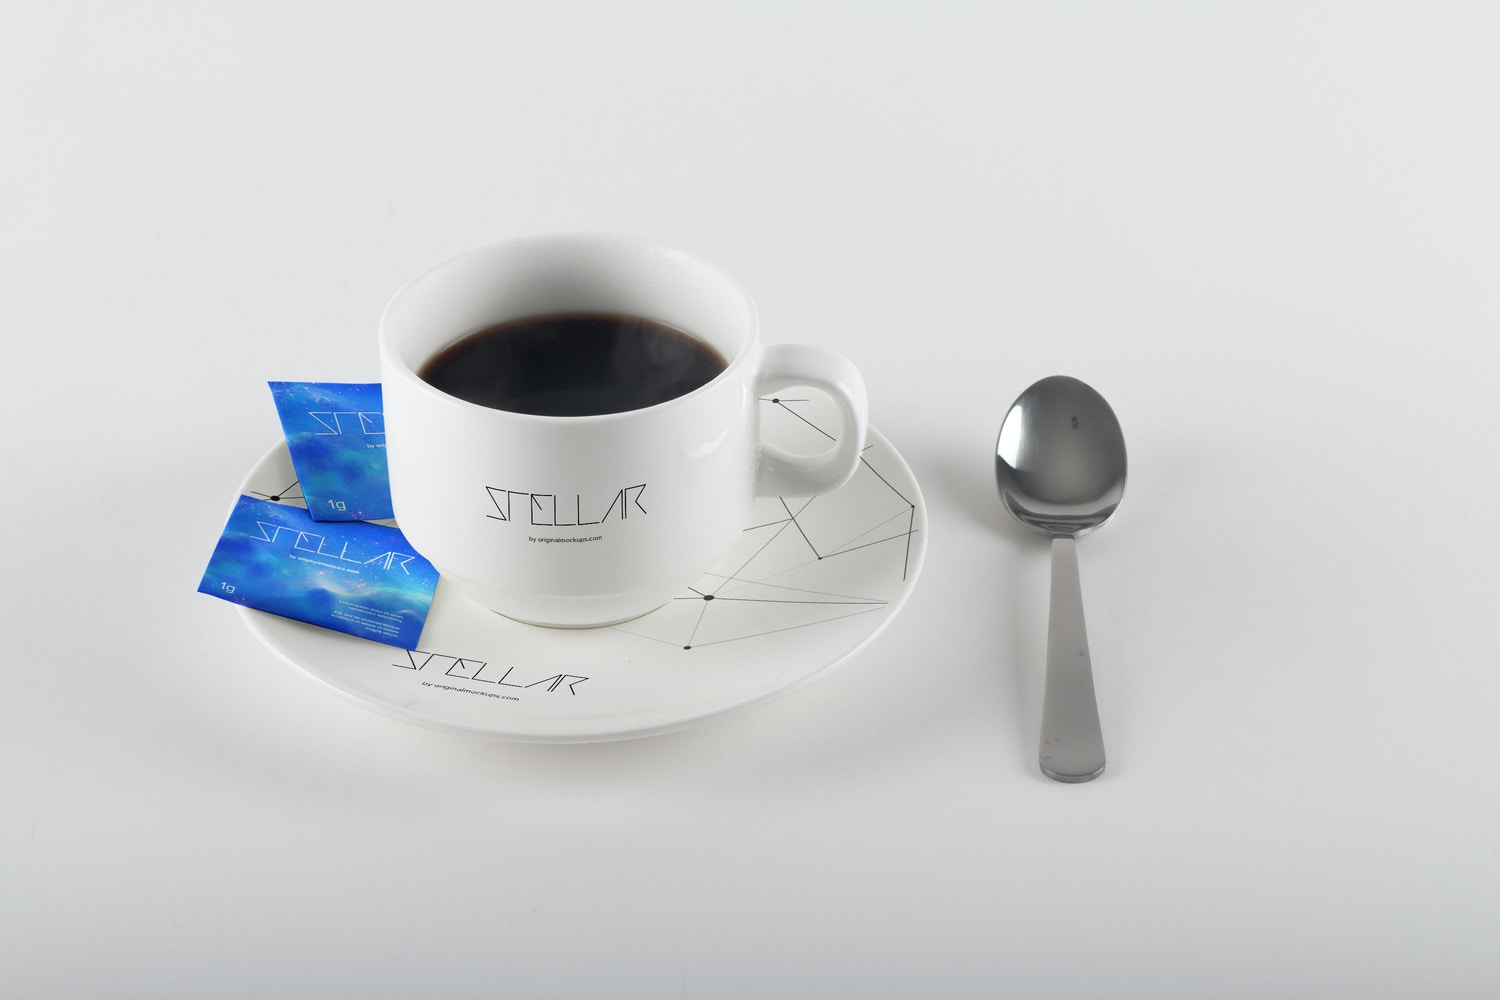 Coffee Cup and Sugar Bags Mockup 01 by Original Mockups on Original Mockups